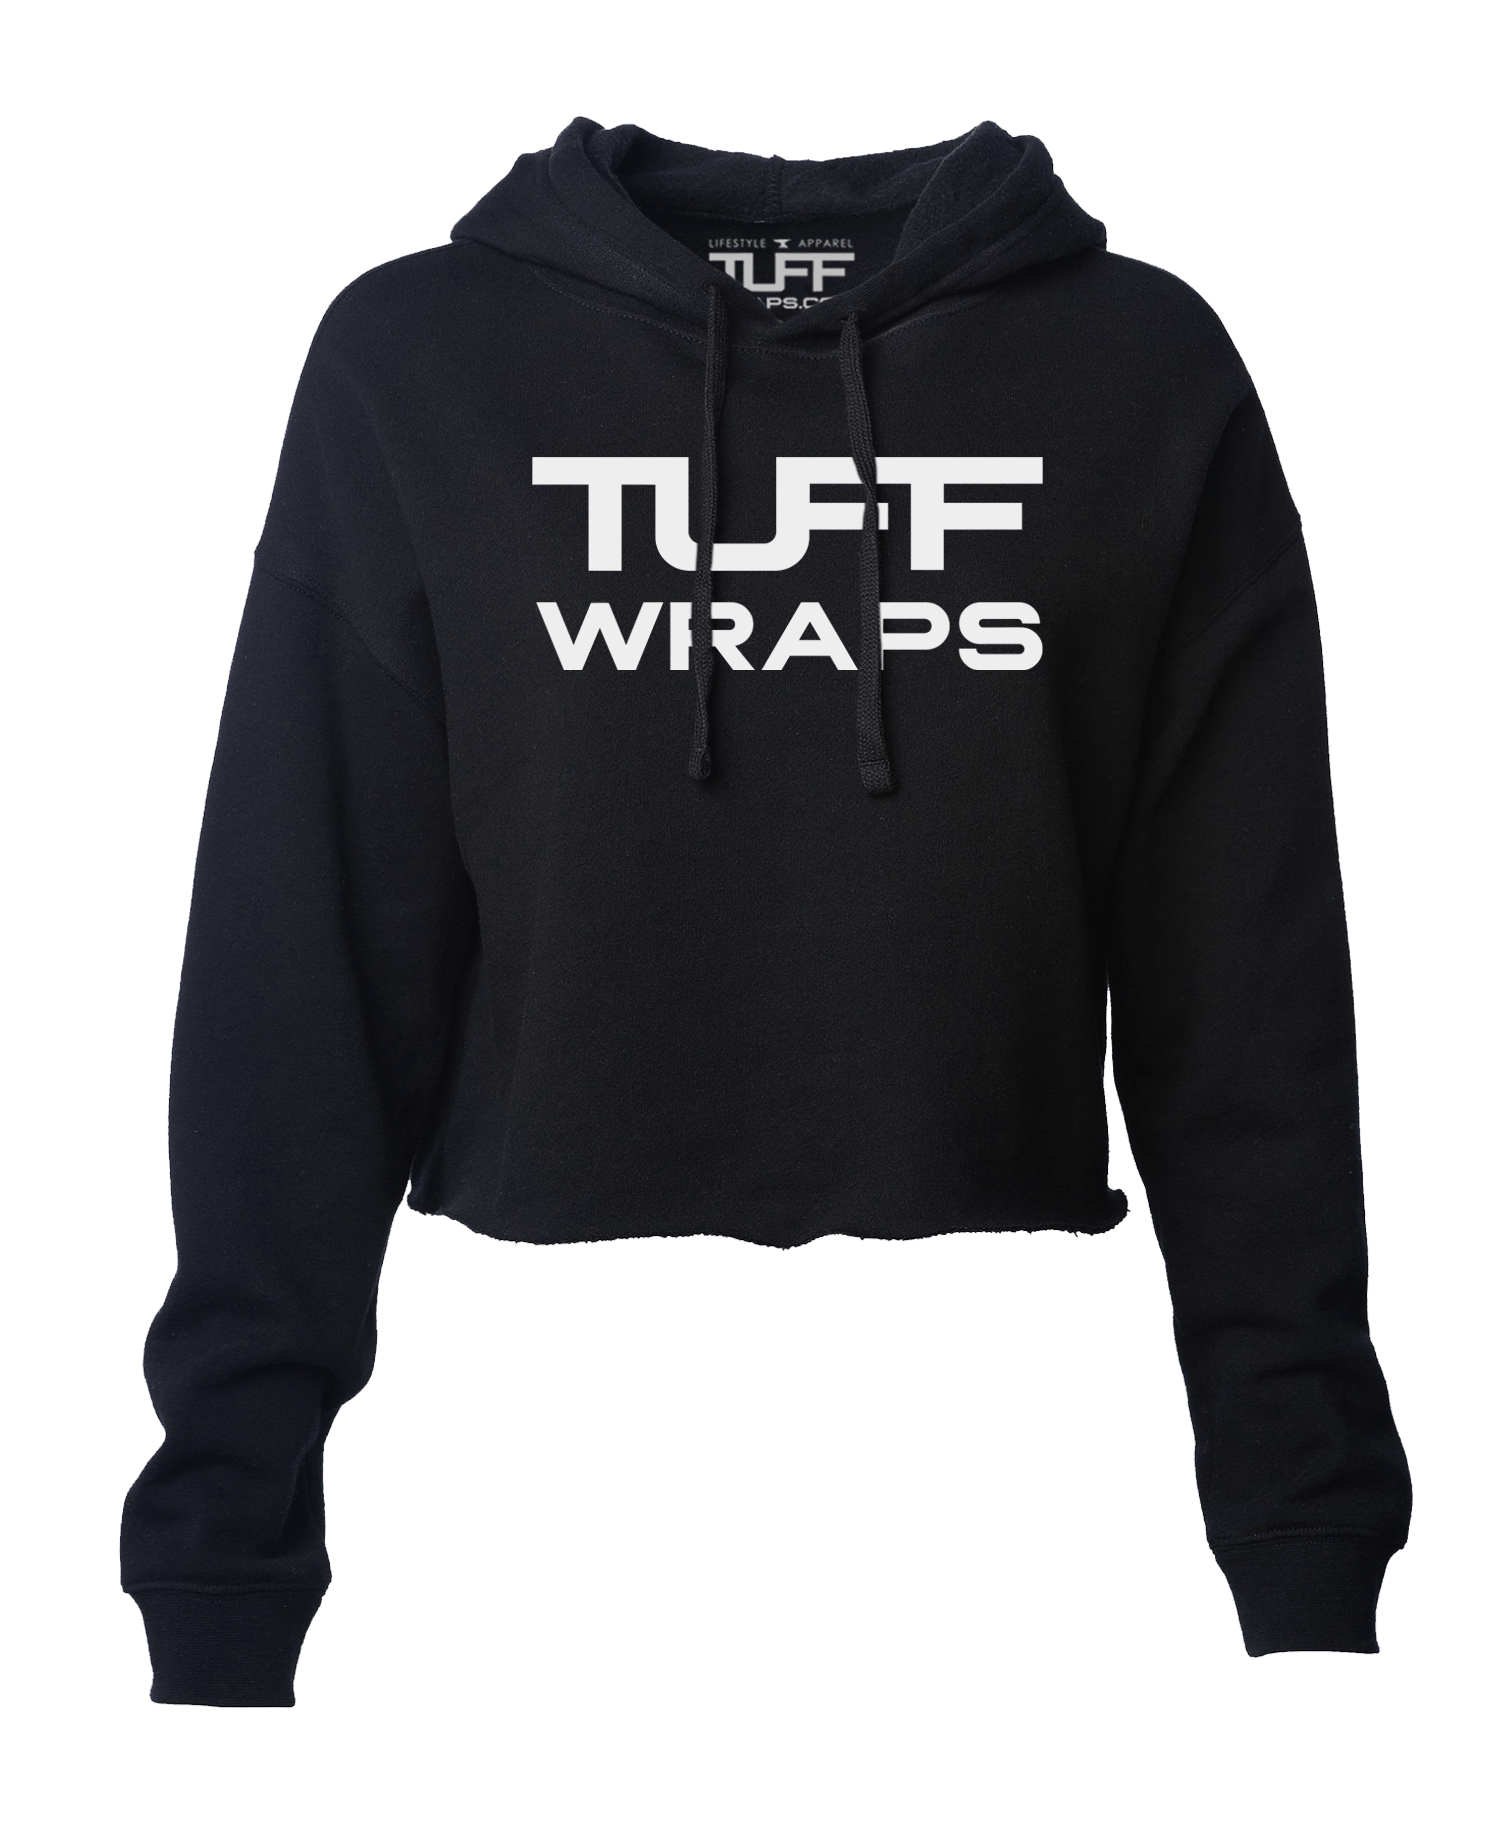 Tuffwraps Global Hooded Cropped Fleece